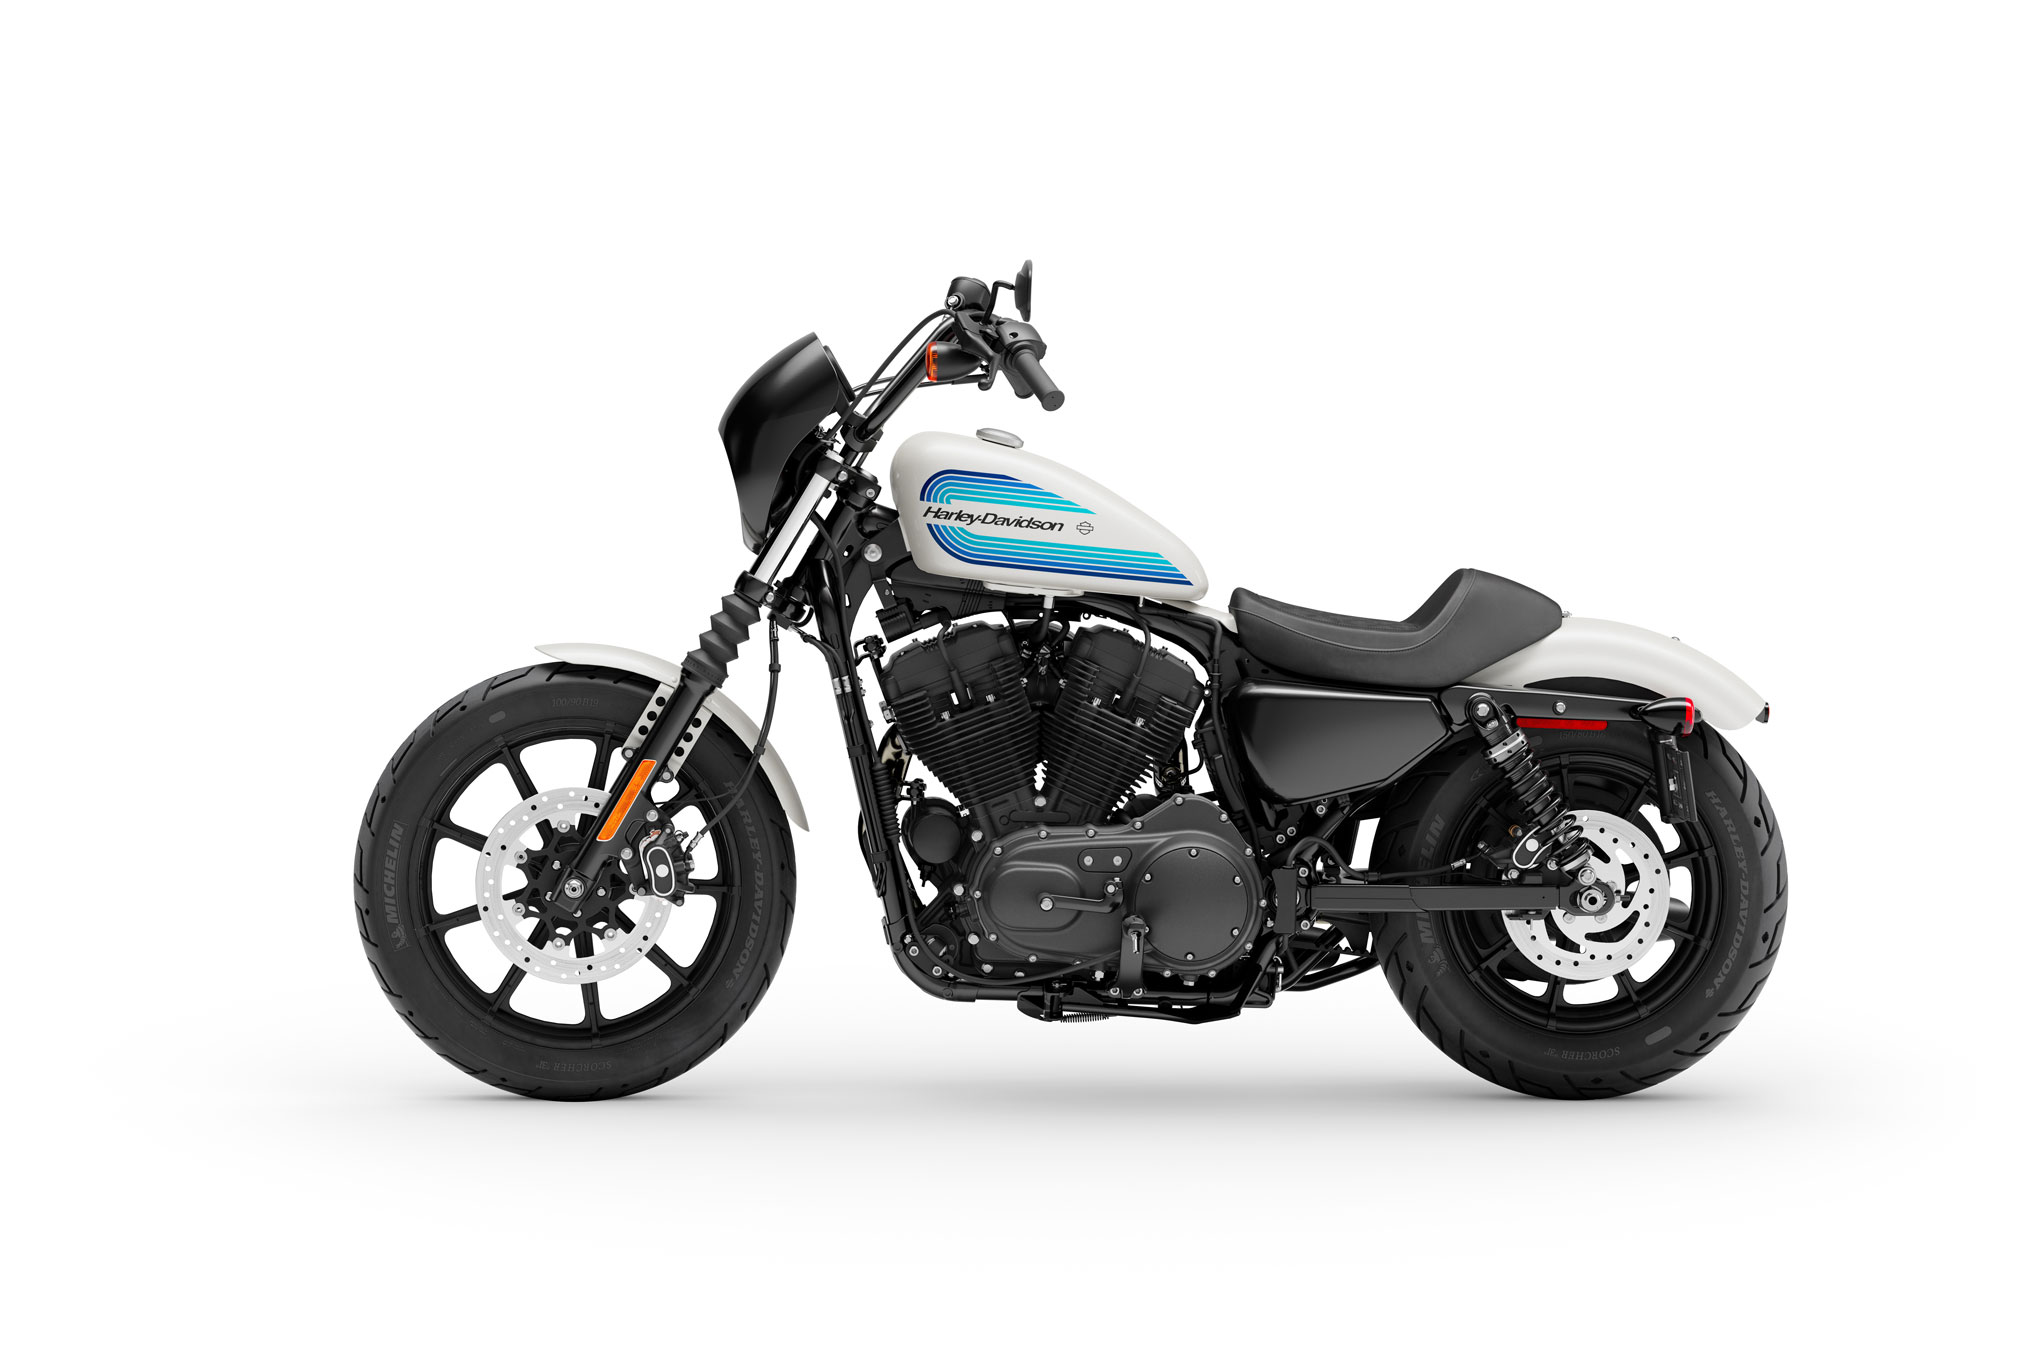 2019 Harley-Davidson Iron 1200 Guide • Total Motorcycle